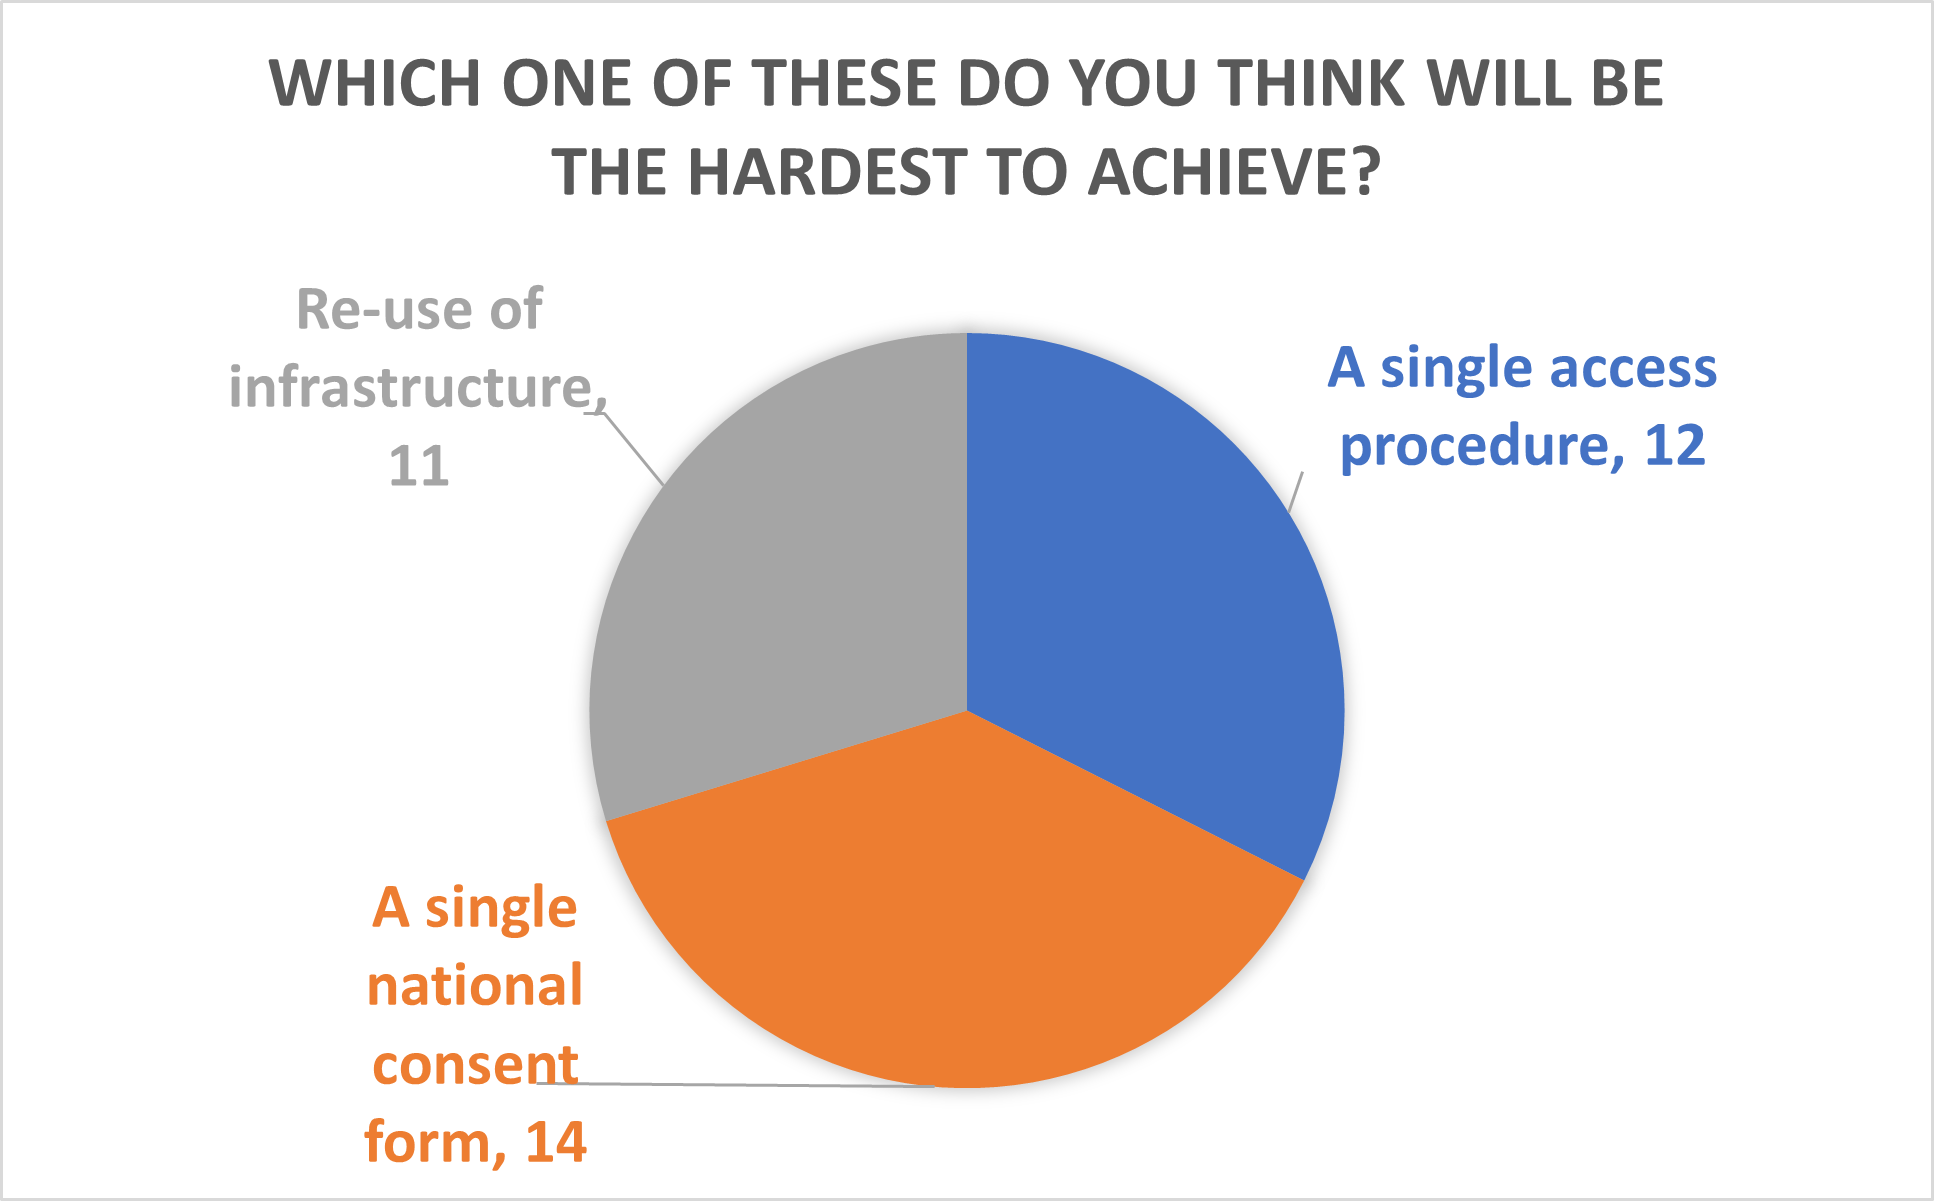 Pie chart from the Biobanking Showcase highlighting what biobanks felt was the hardest to achieve in terms of consensus policies